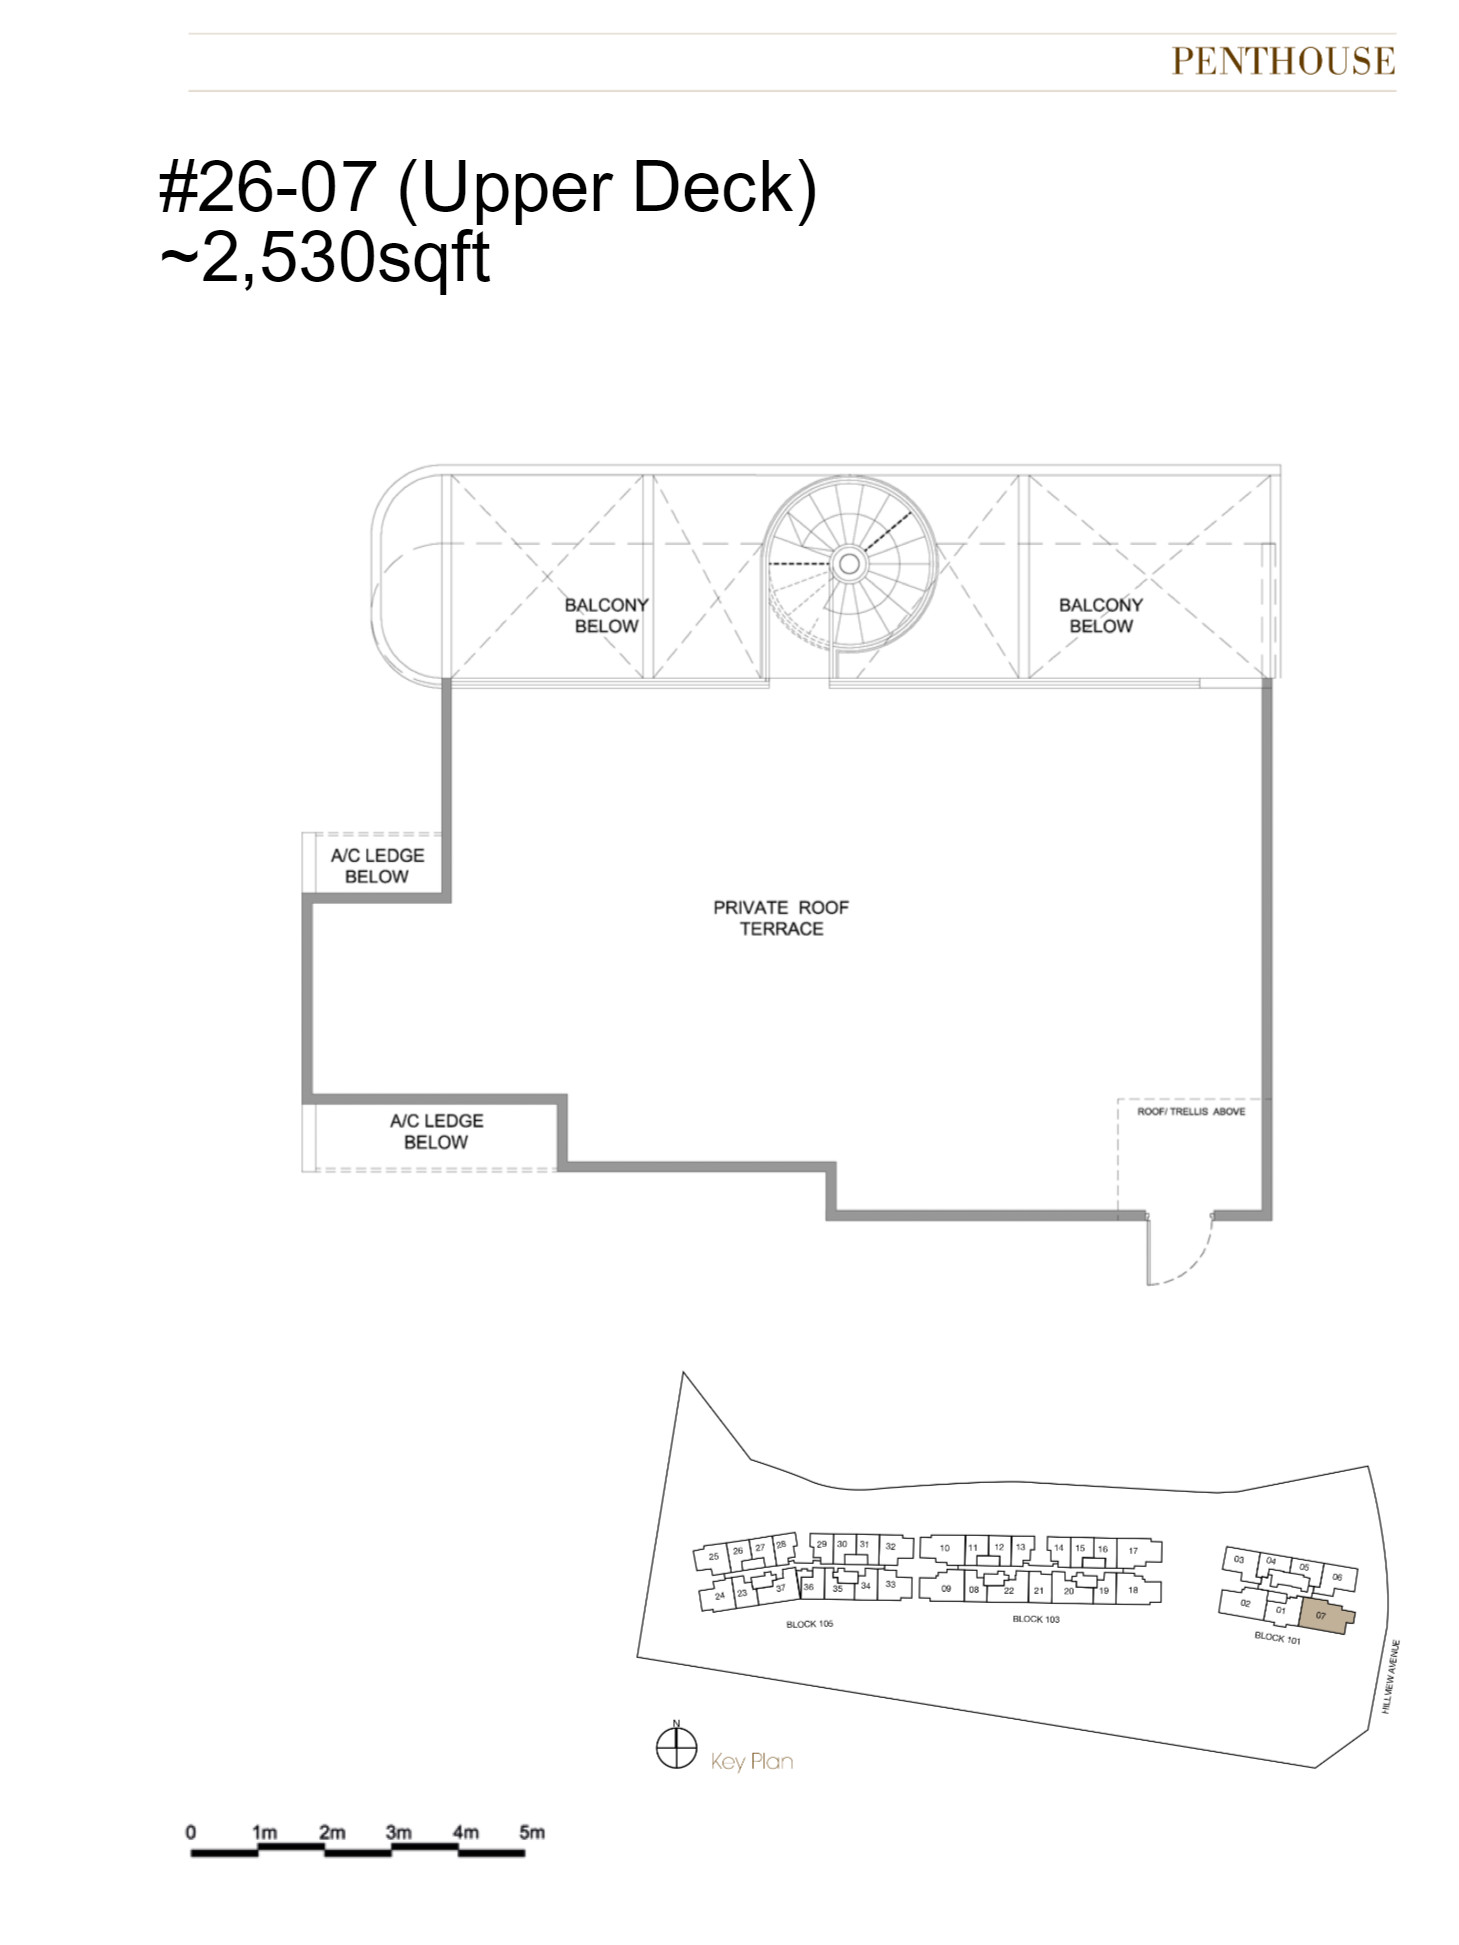 kingsford hillview peak floor plan brochures. Black Bedroom Furniture Sets. Home Design Ideas